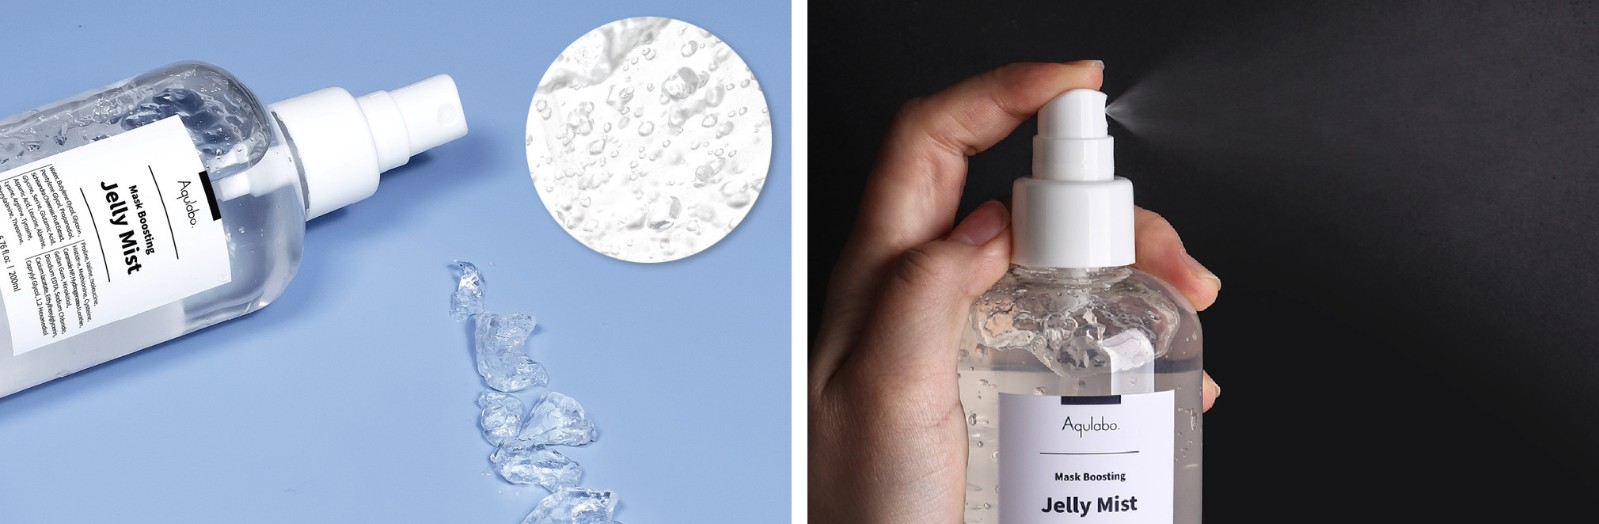 Mask Boosting Jelly Mist Detail